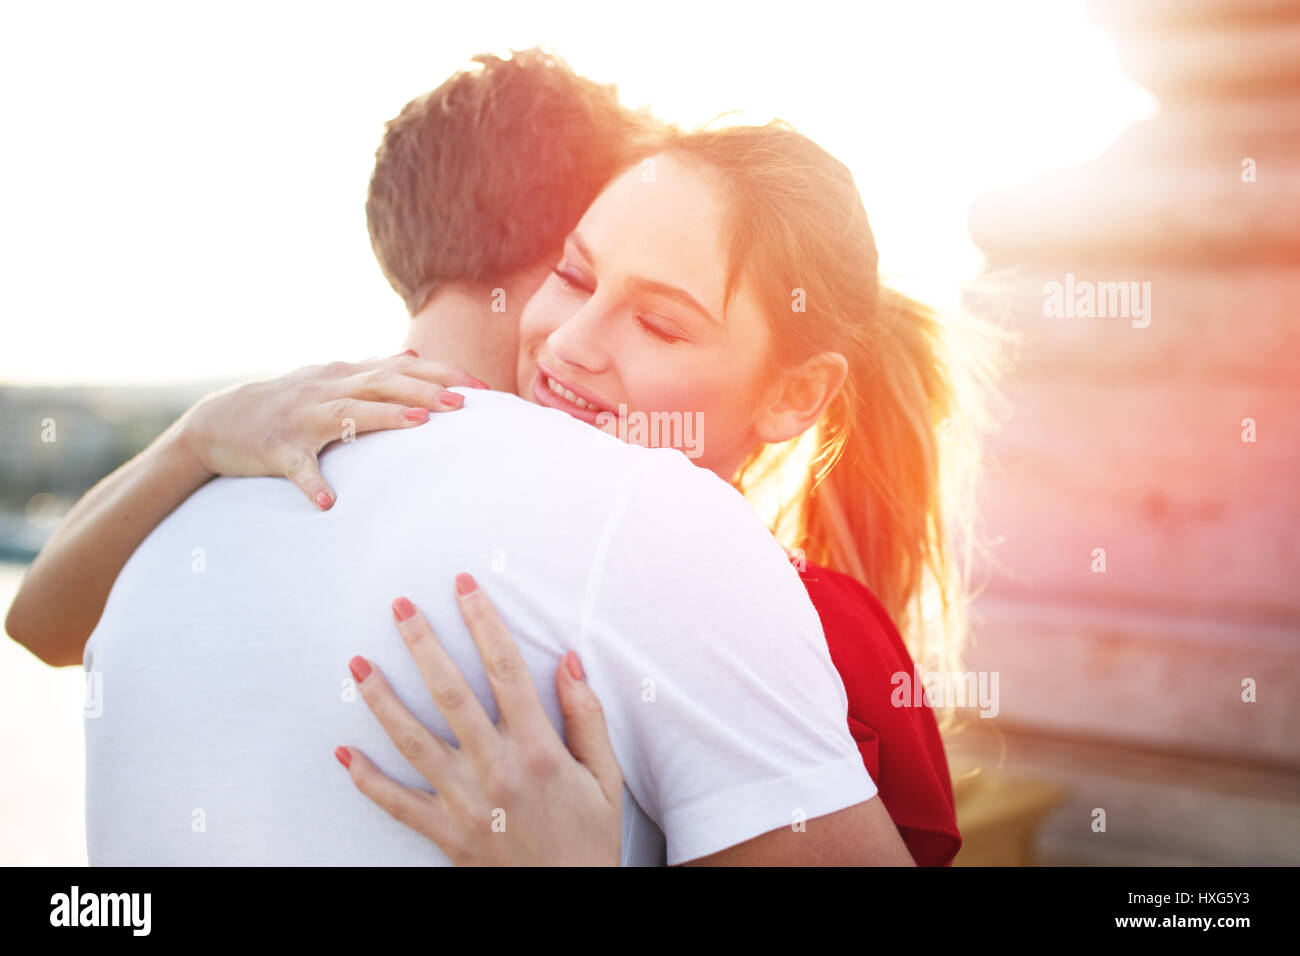 Young blonde woman embracing boyfriend outdoor - Stock Image